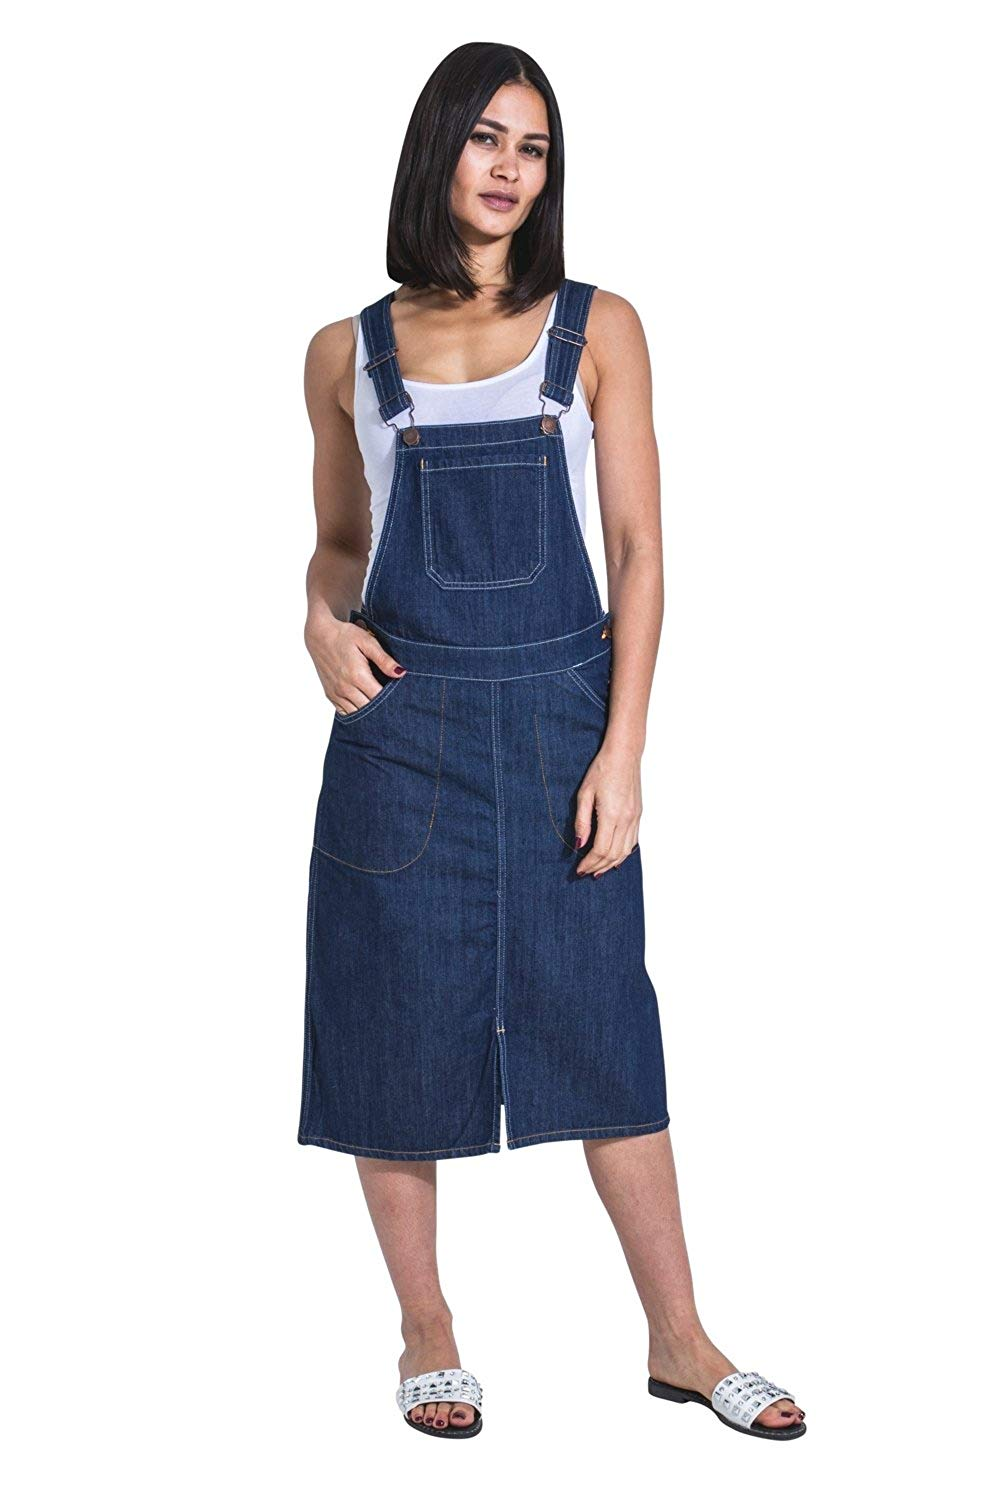 6aaad2485 Get Quotations · USKEES Midi Denim Dungaree Dress - Darkwash Pinafore Bib  Front Split